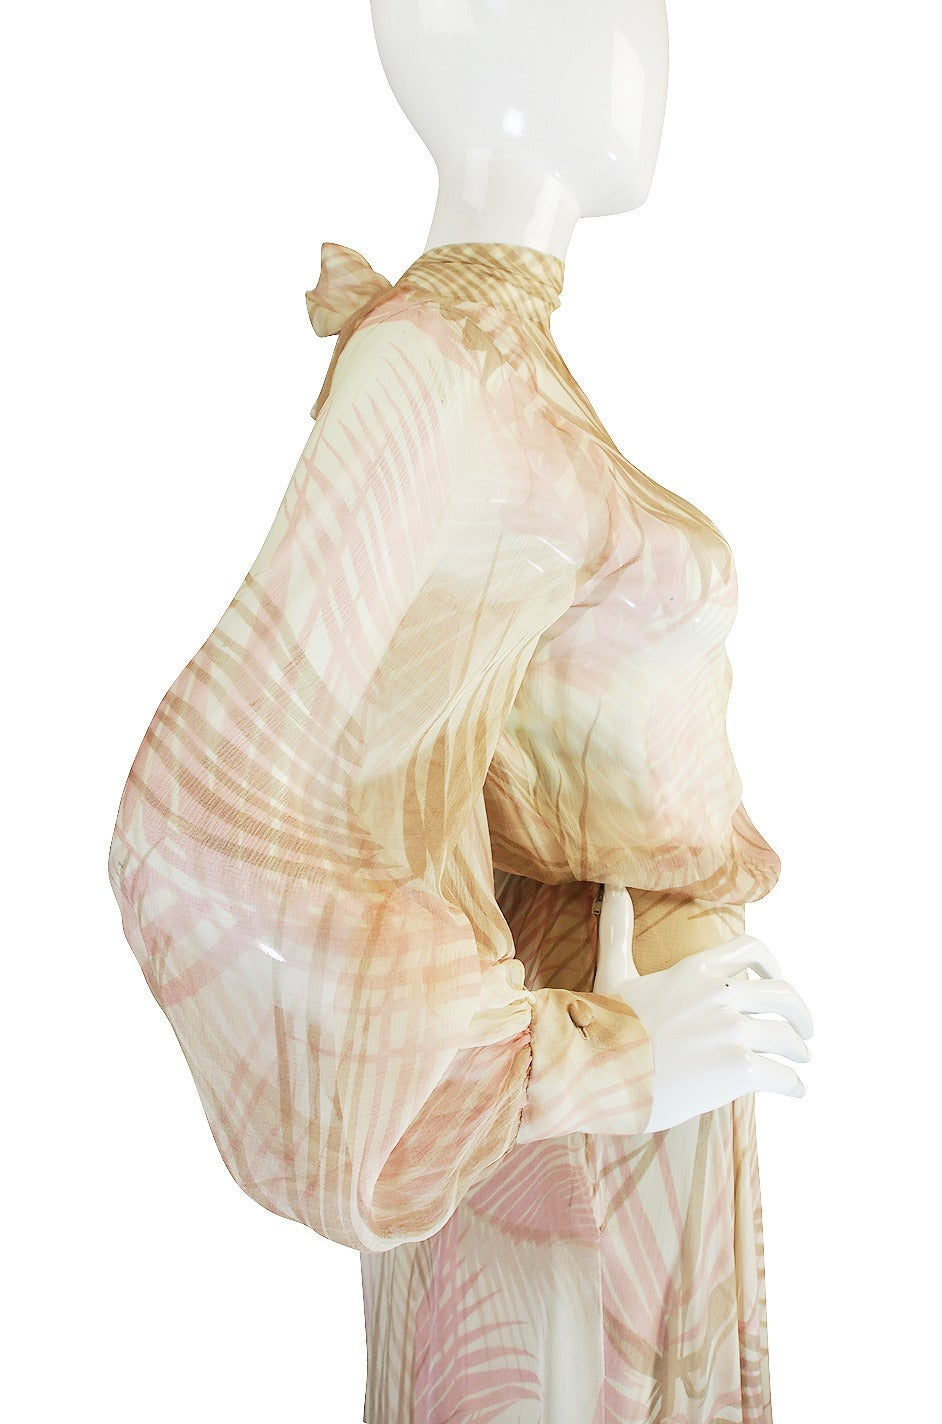 S/S 1974 Christian Dior Haute Couture Silk Gown For Sale 3